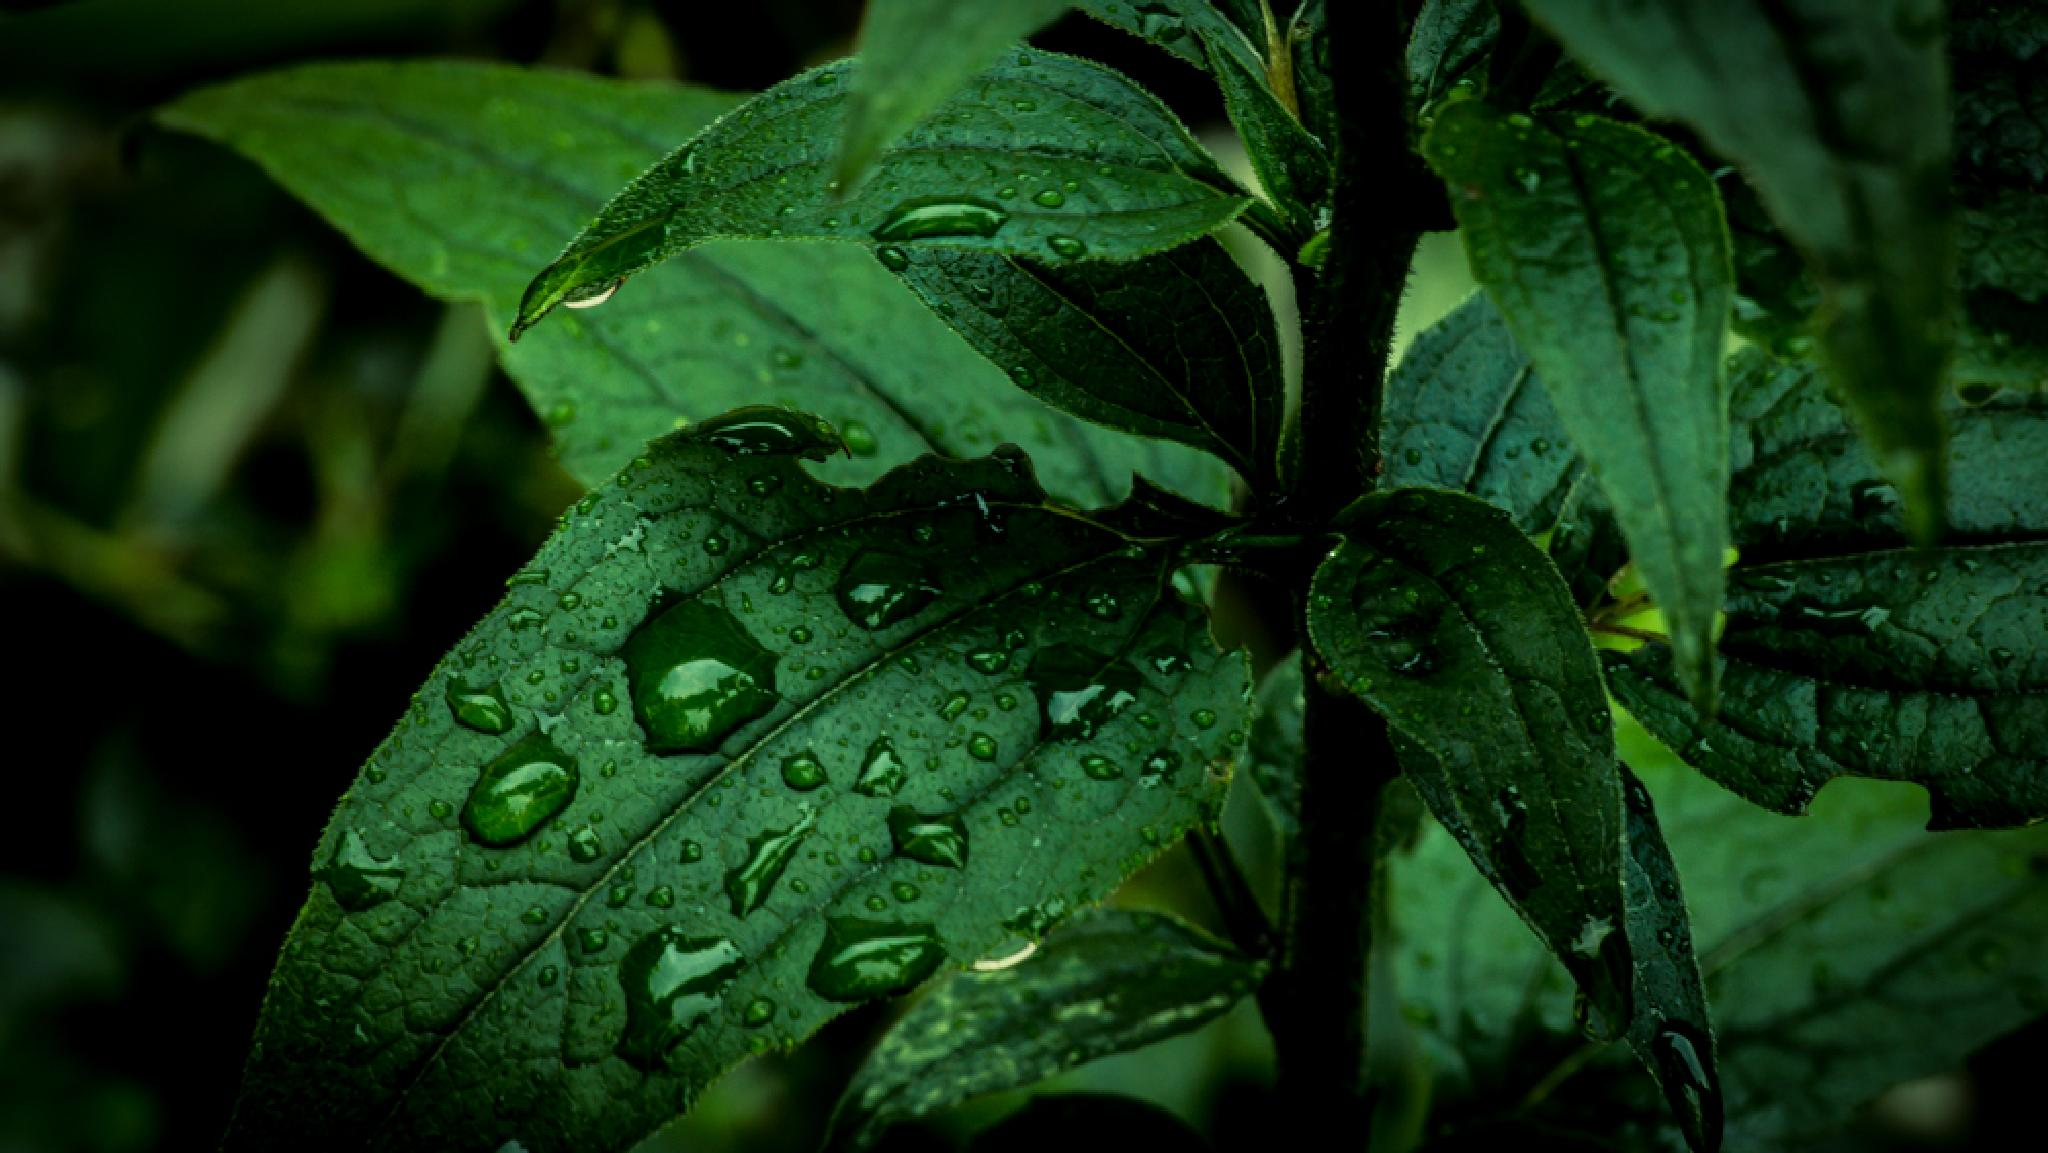 Water on leaf by Ajktsb